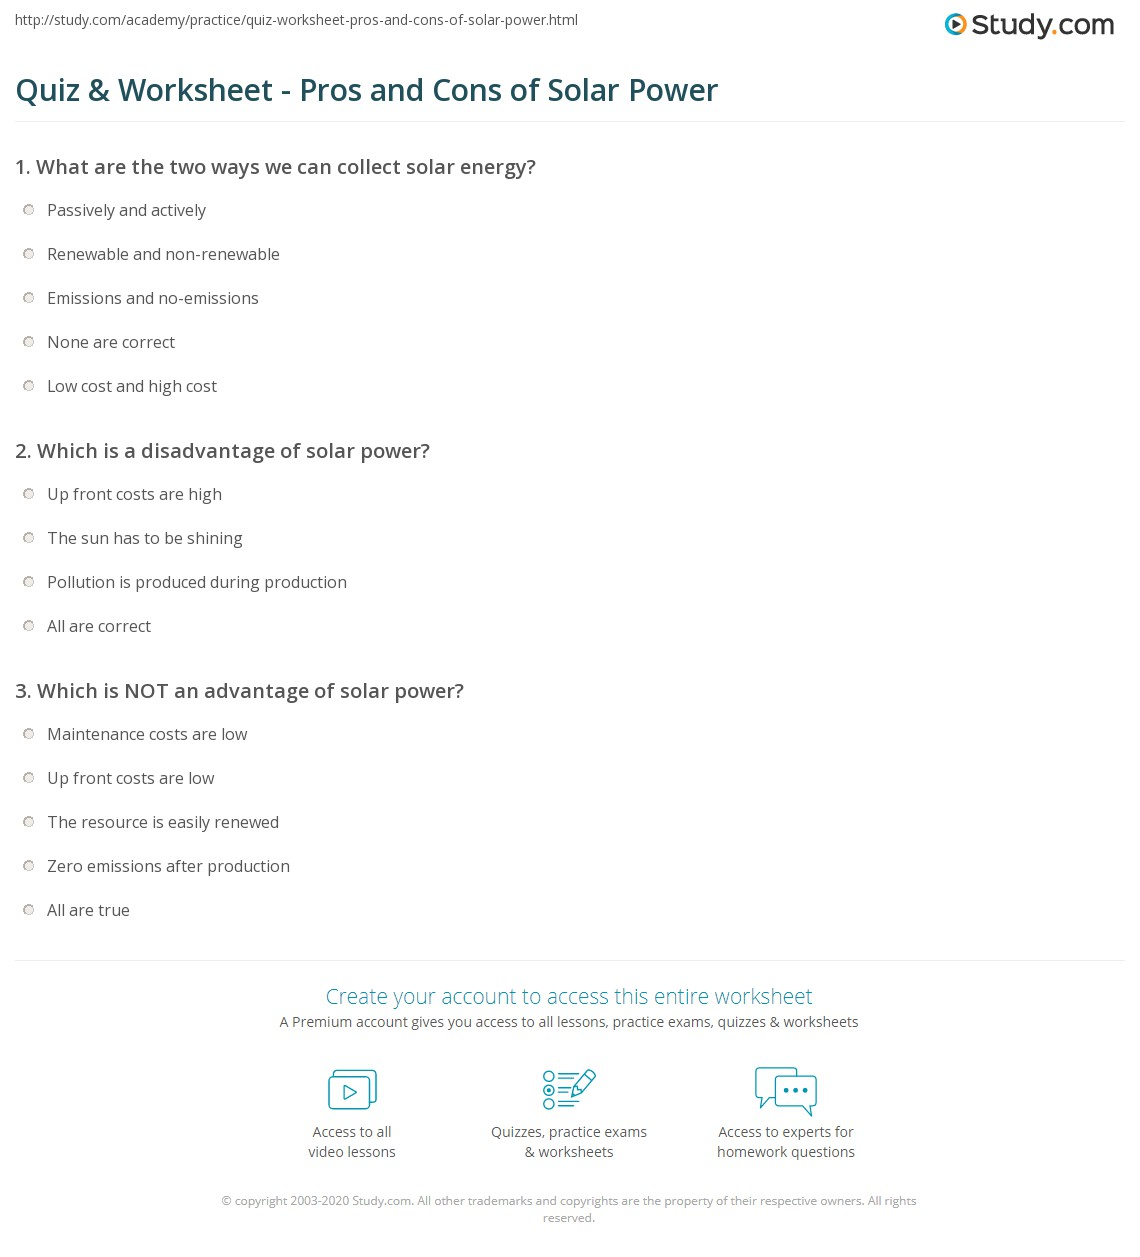 Quiz & Worksheet - Pros and Cons of Solar Power | Study com